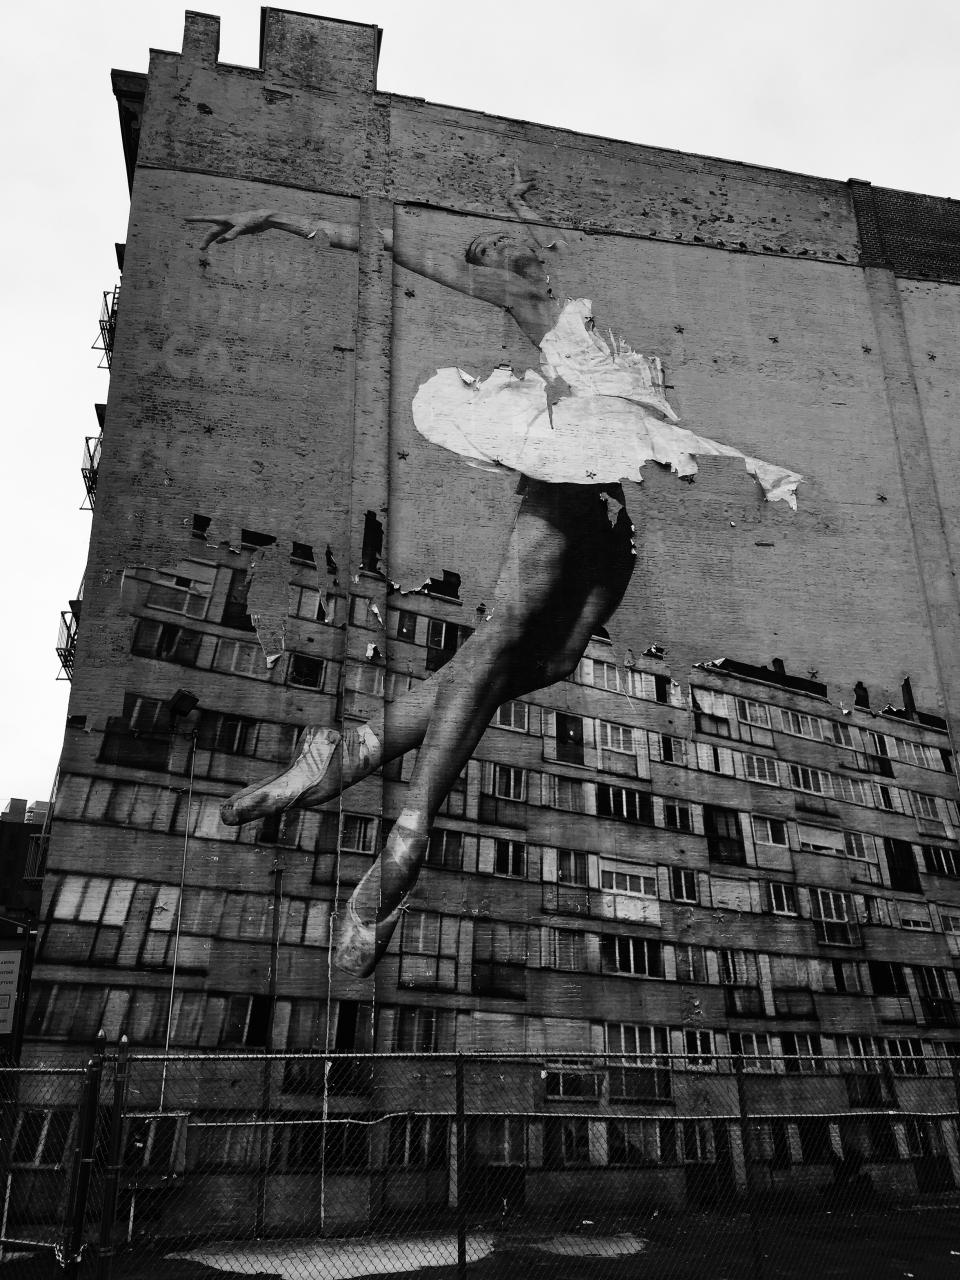 street art, vandal, graffiti, paint, design, art, street, black and white, monochrome, dancer, ballet, ballerina, ghetto